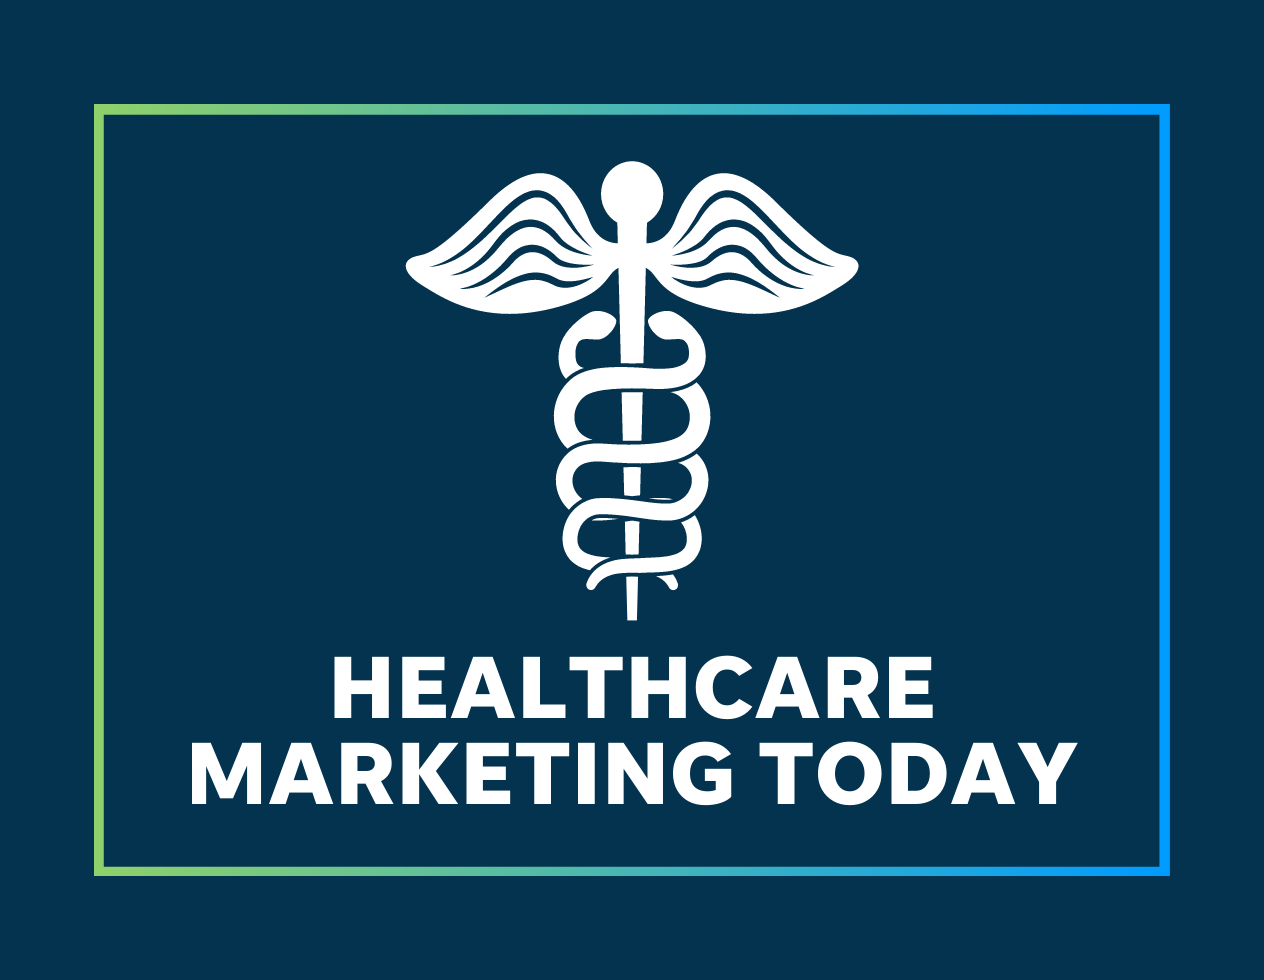 Healthcare Marketing Today: Build a Confident Recovery Plan